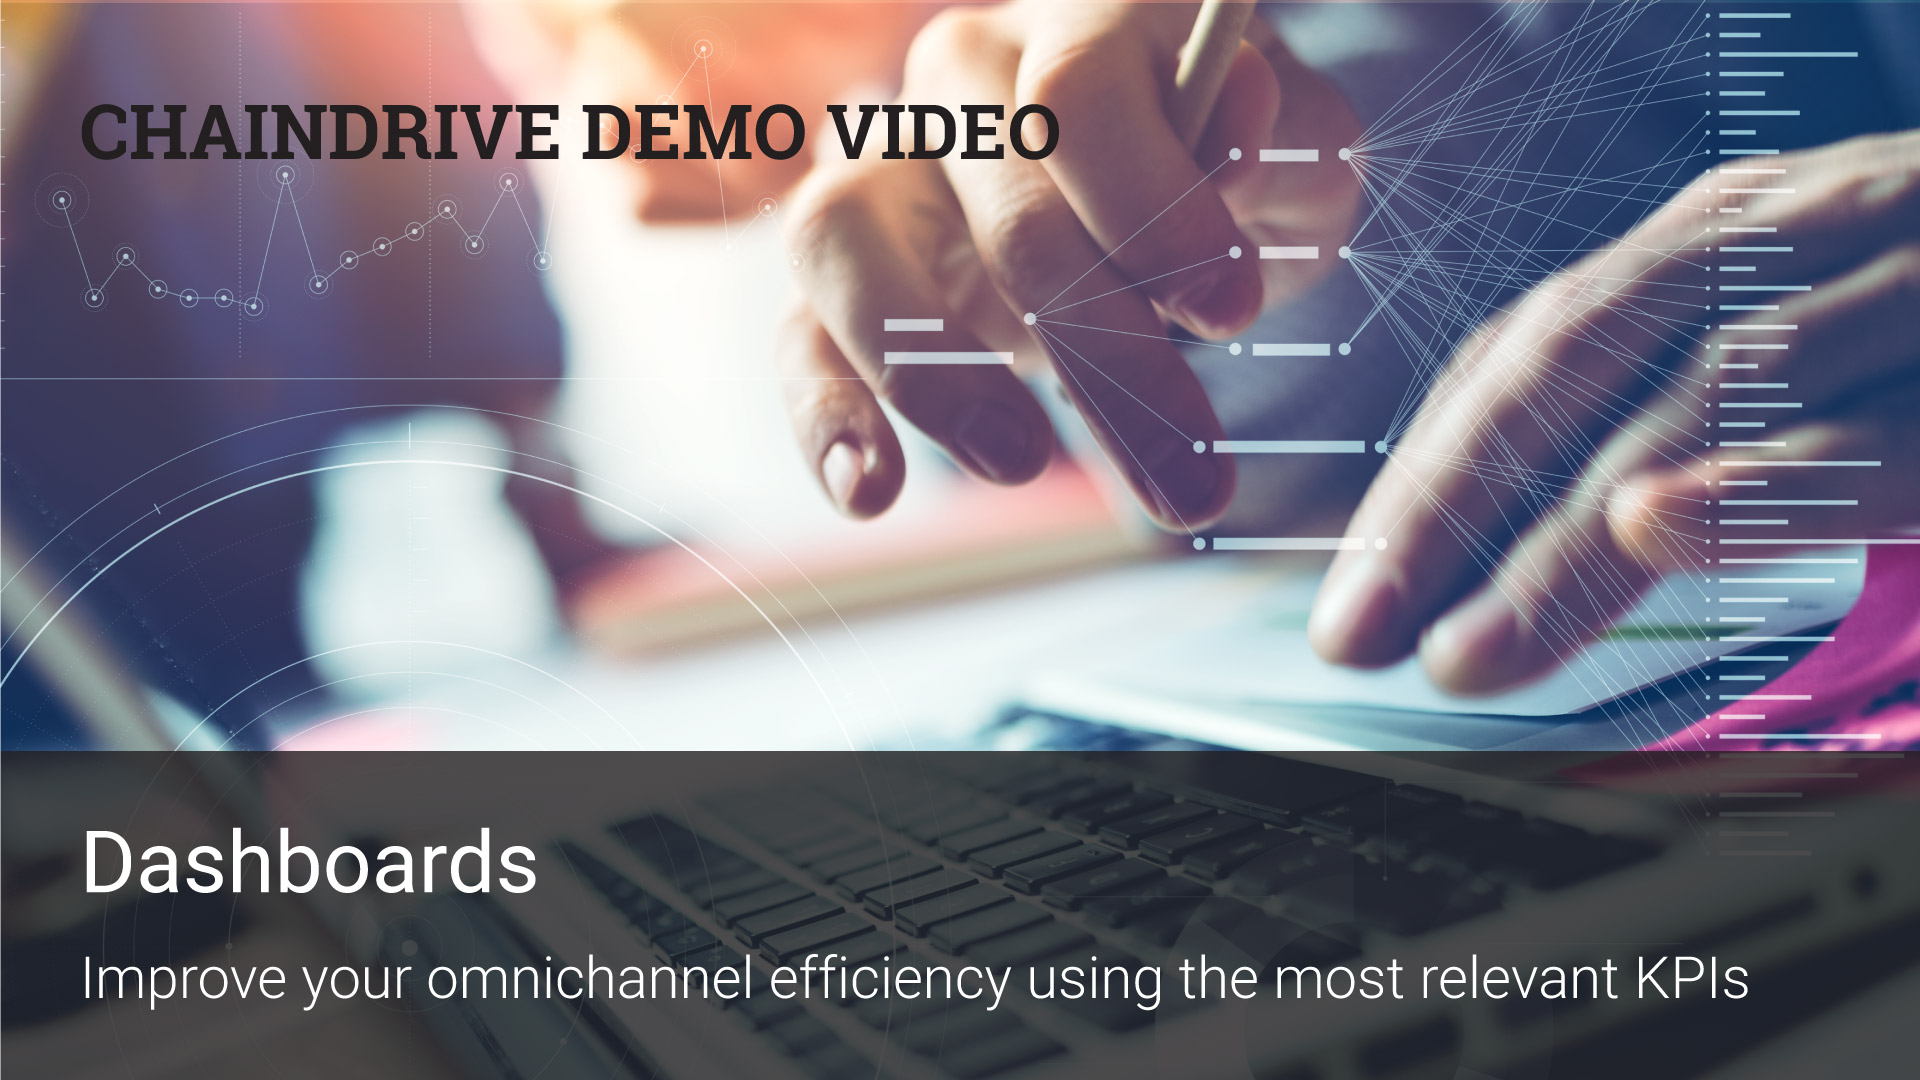 Retail Recources - ChainDrive POS Dashboards Demo Video